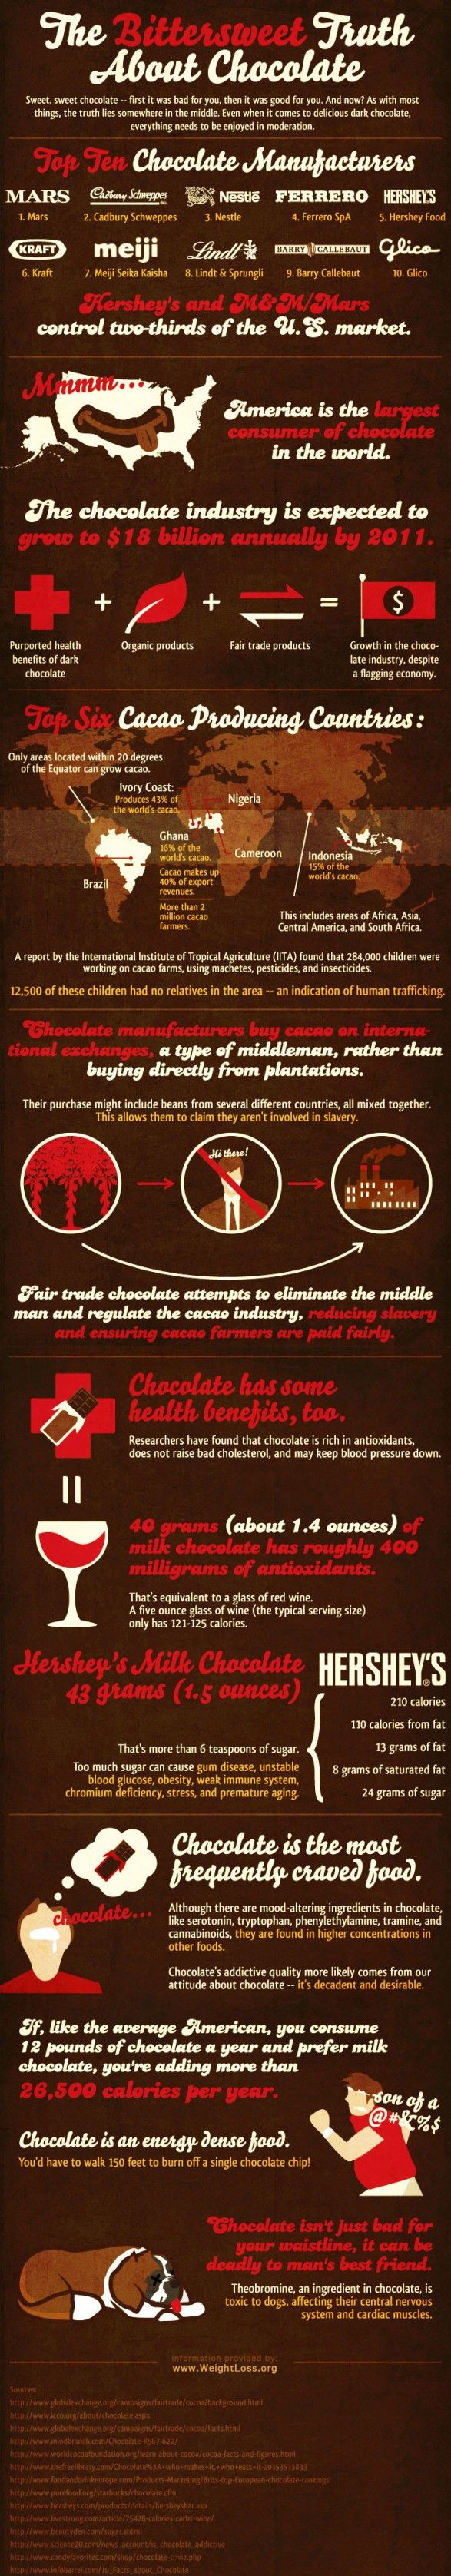 Got A #Chocolate Craving? Check Out This Infographic For All The Chocolate Facts You Could Ever Want